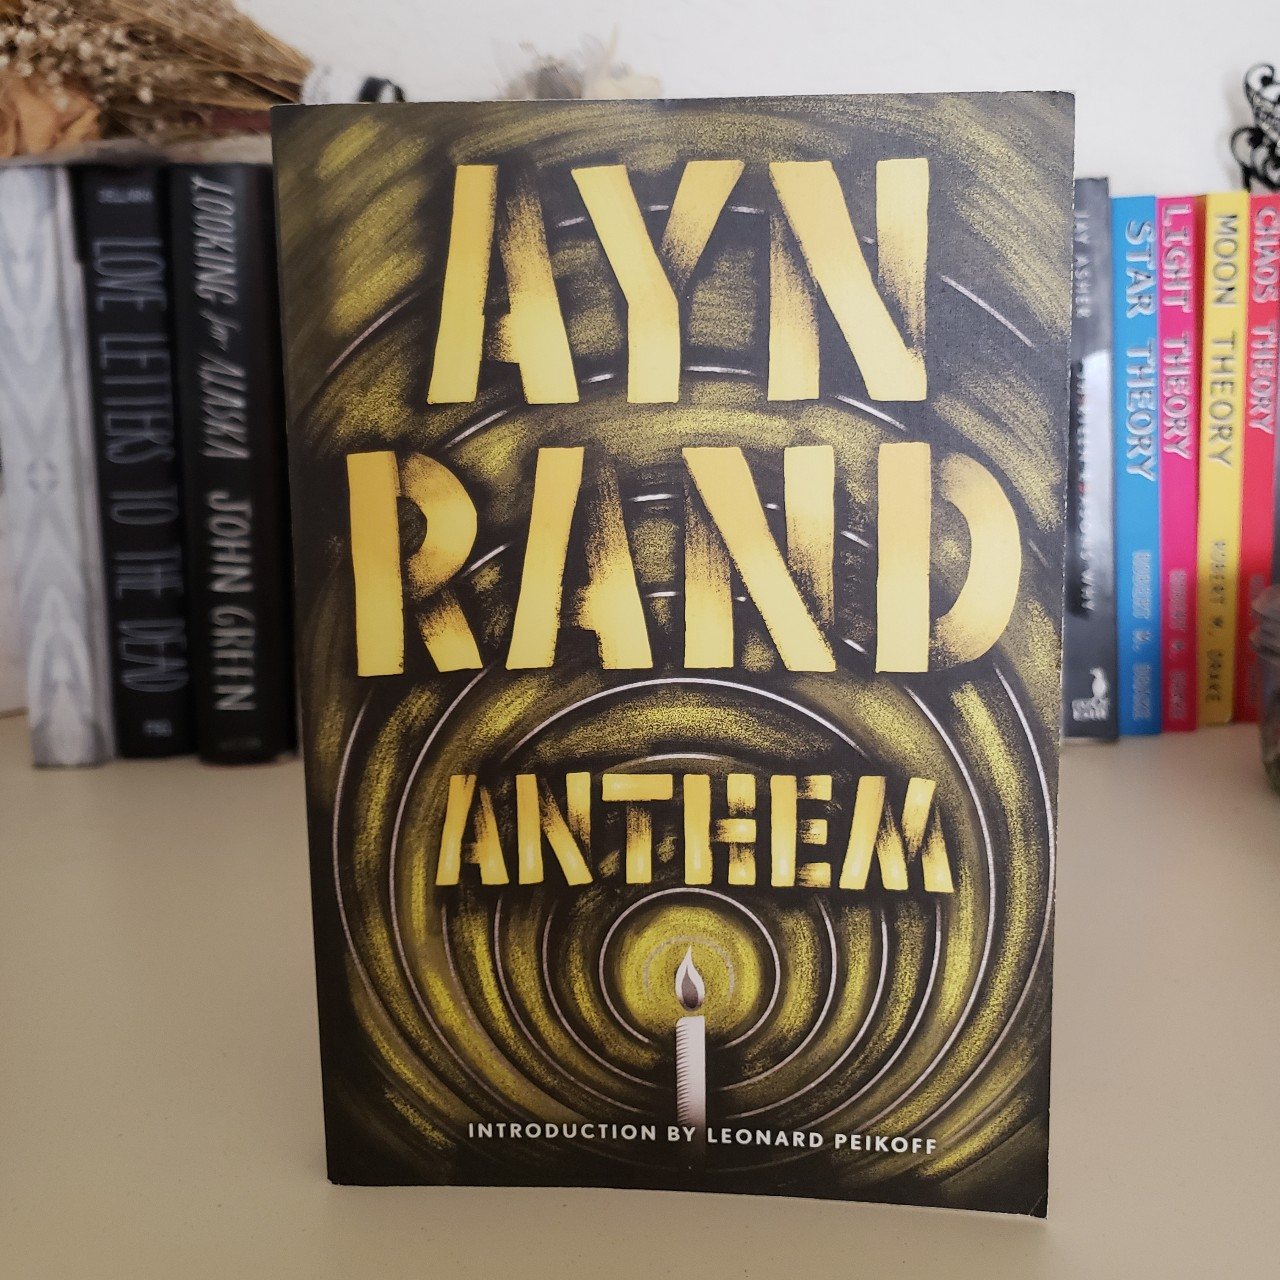 Anthem By Ayn Rand Soft Cover Condition Good Depop